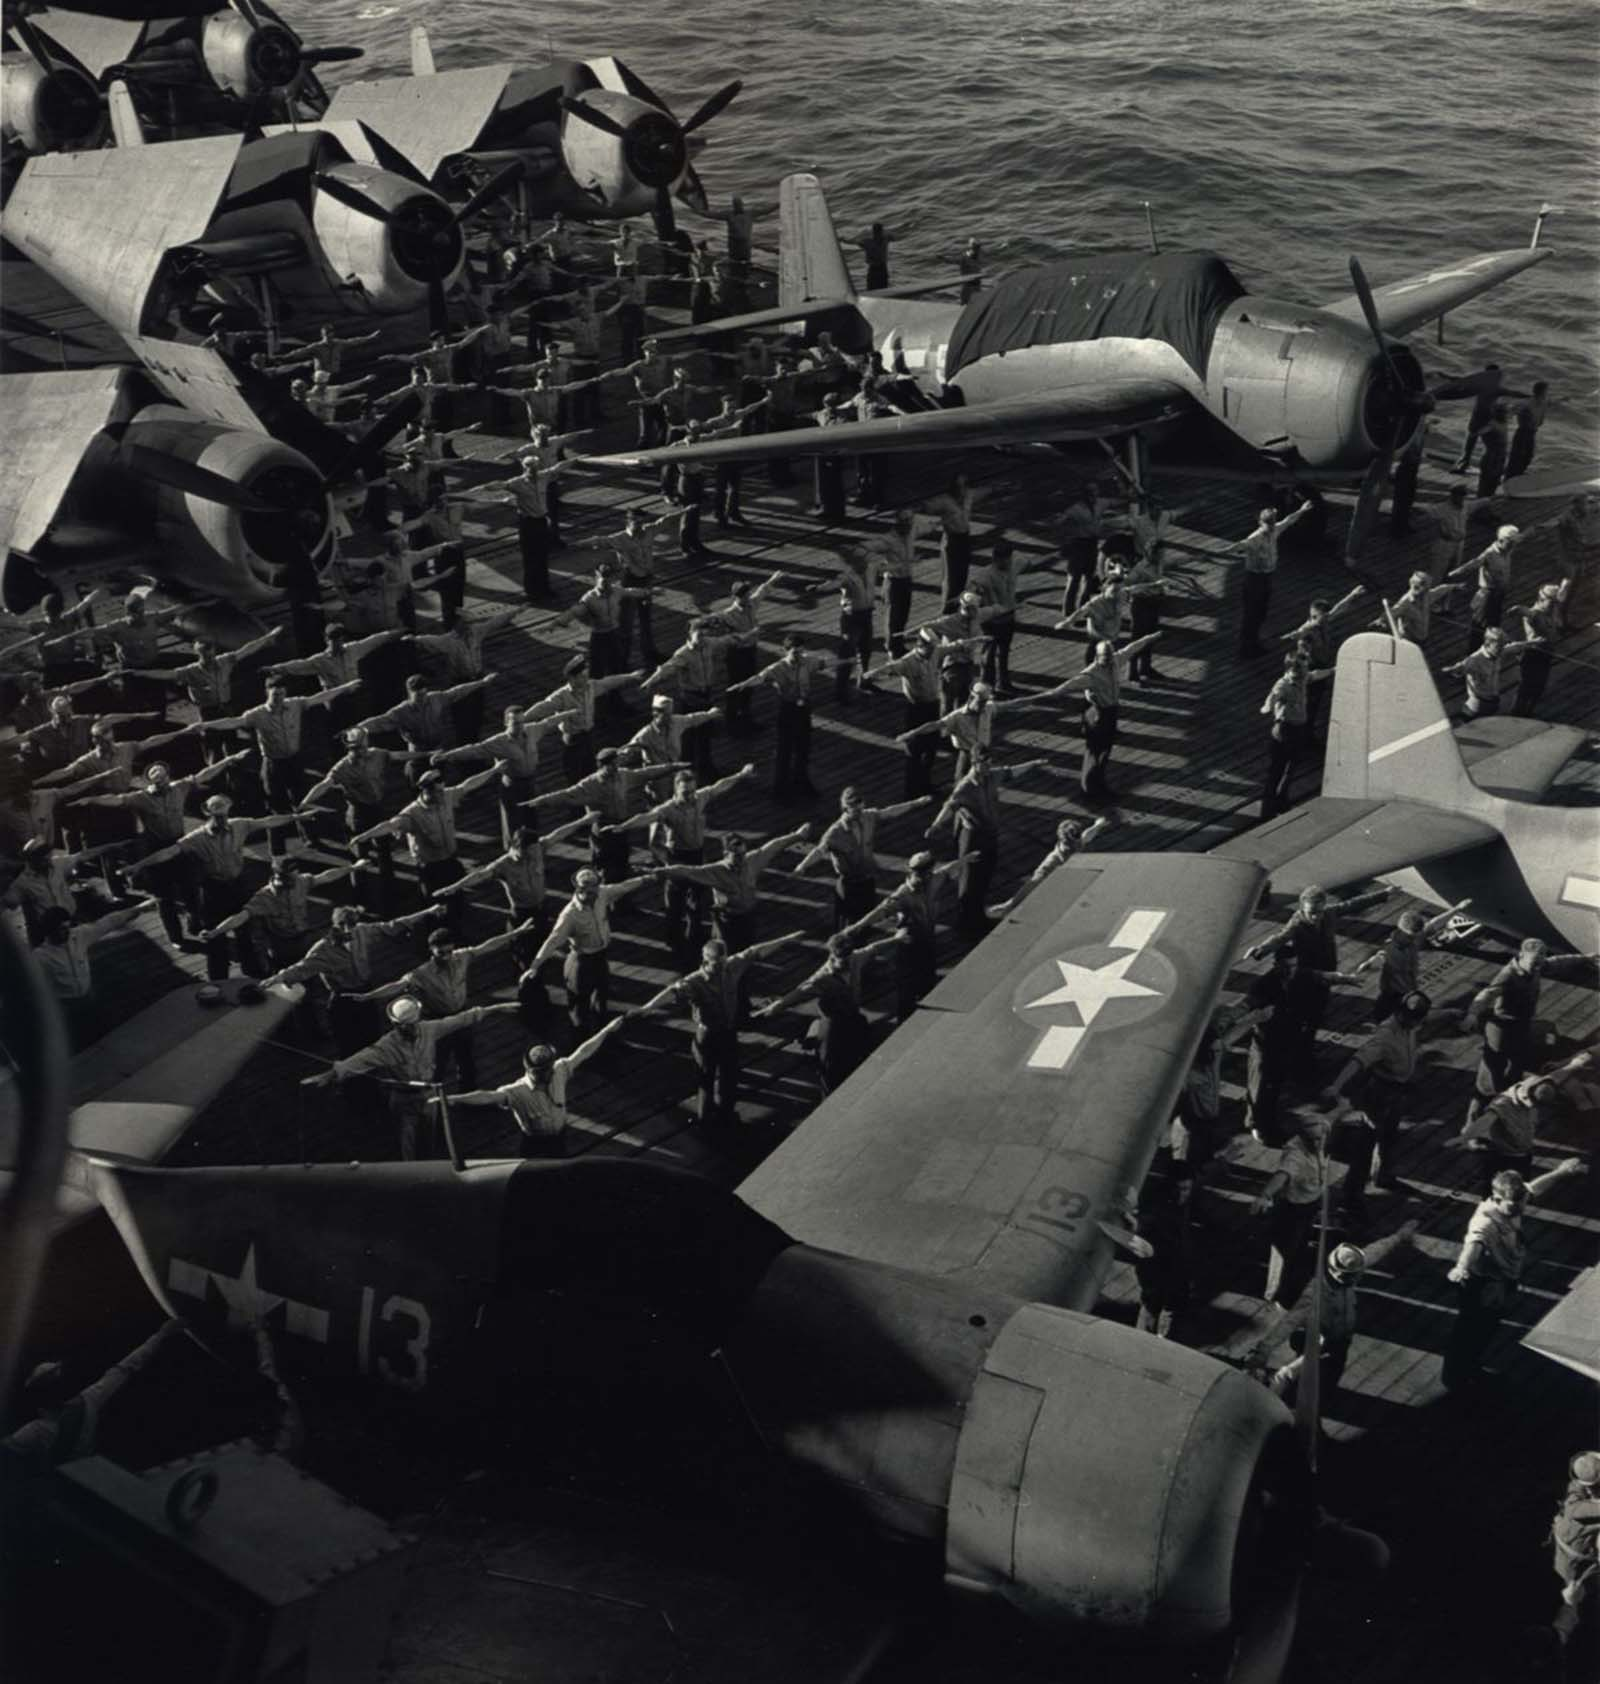 Military Aircraft Aboard U.S.S. Yorktown with Sailors Performing Exercises, 1943.